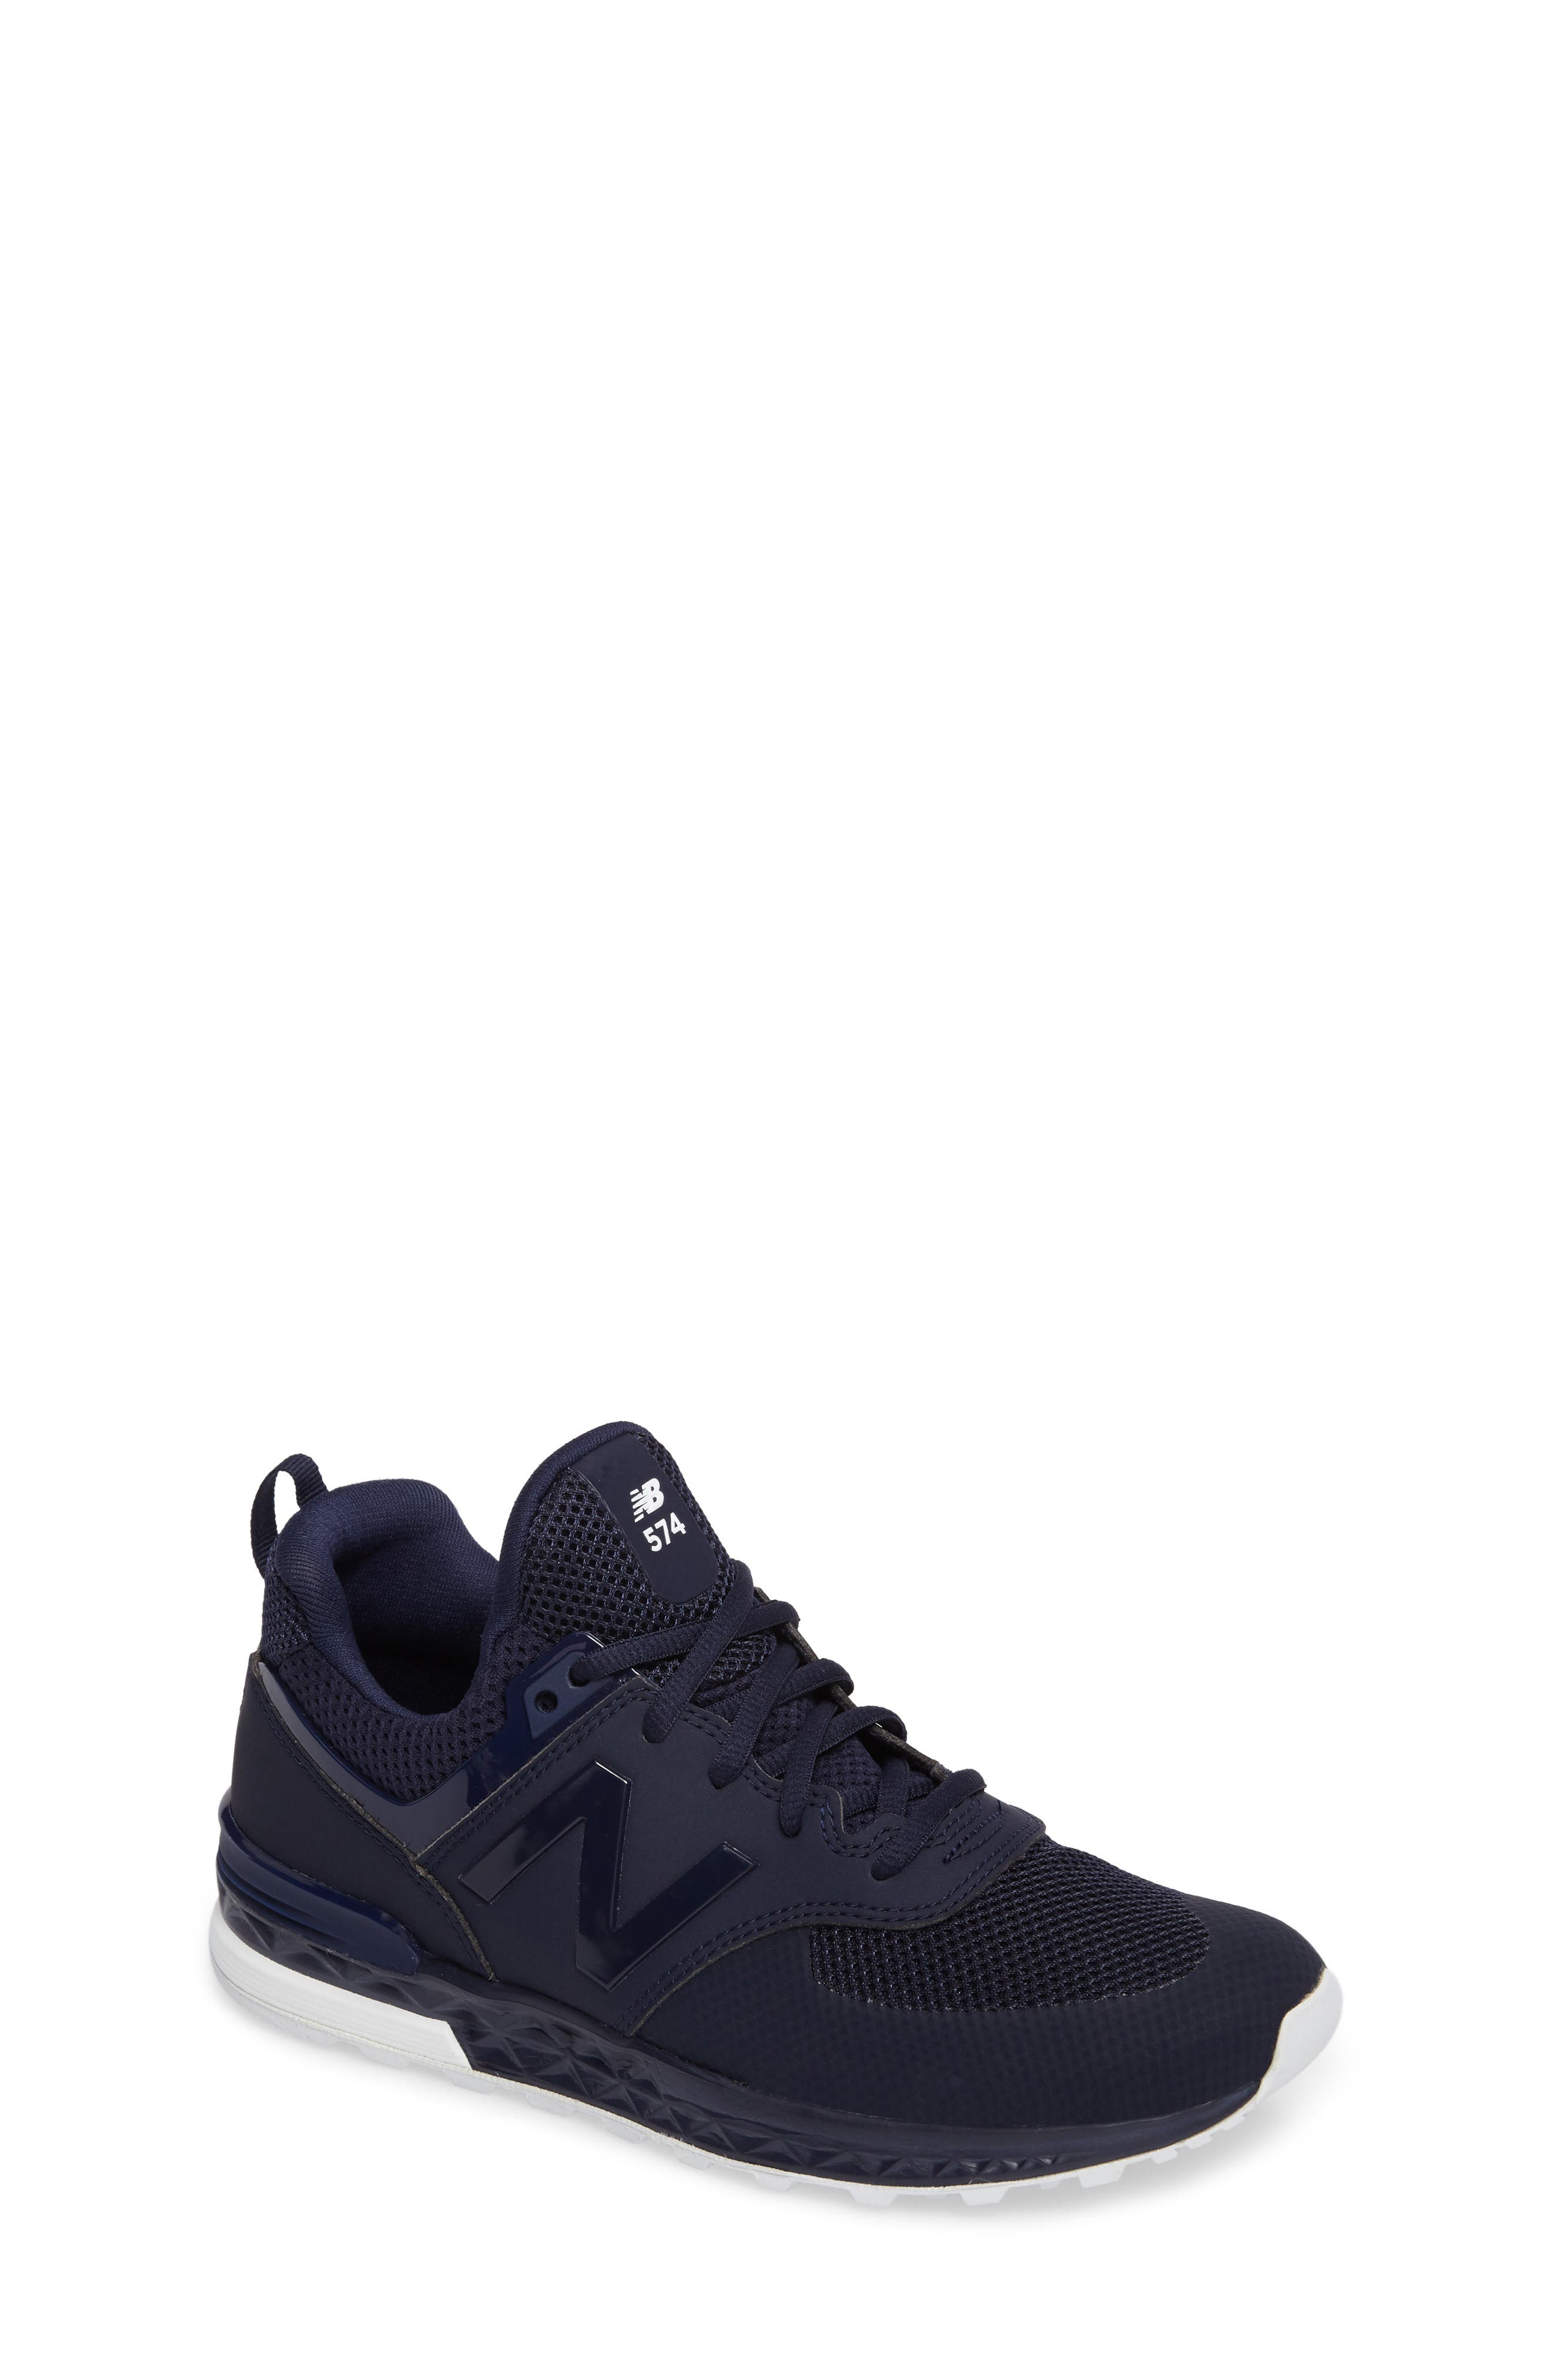 New Balance 574 Sport Sneaker (Baby, Walker, Toddler, Little Kid & Big Kid)